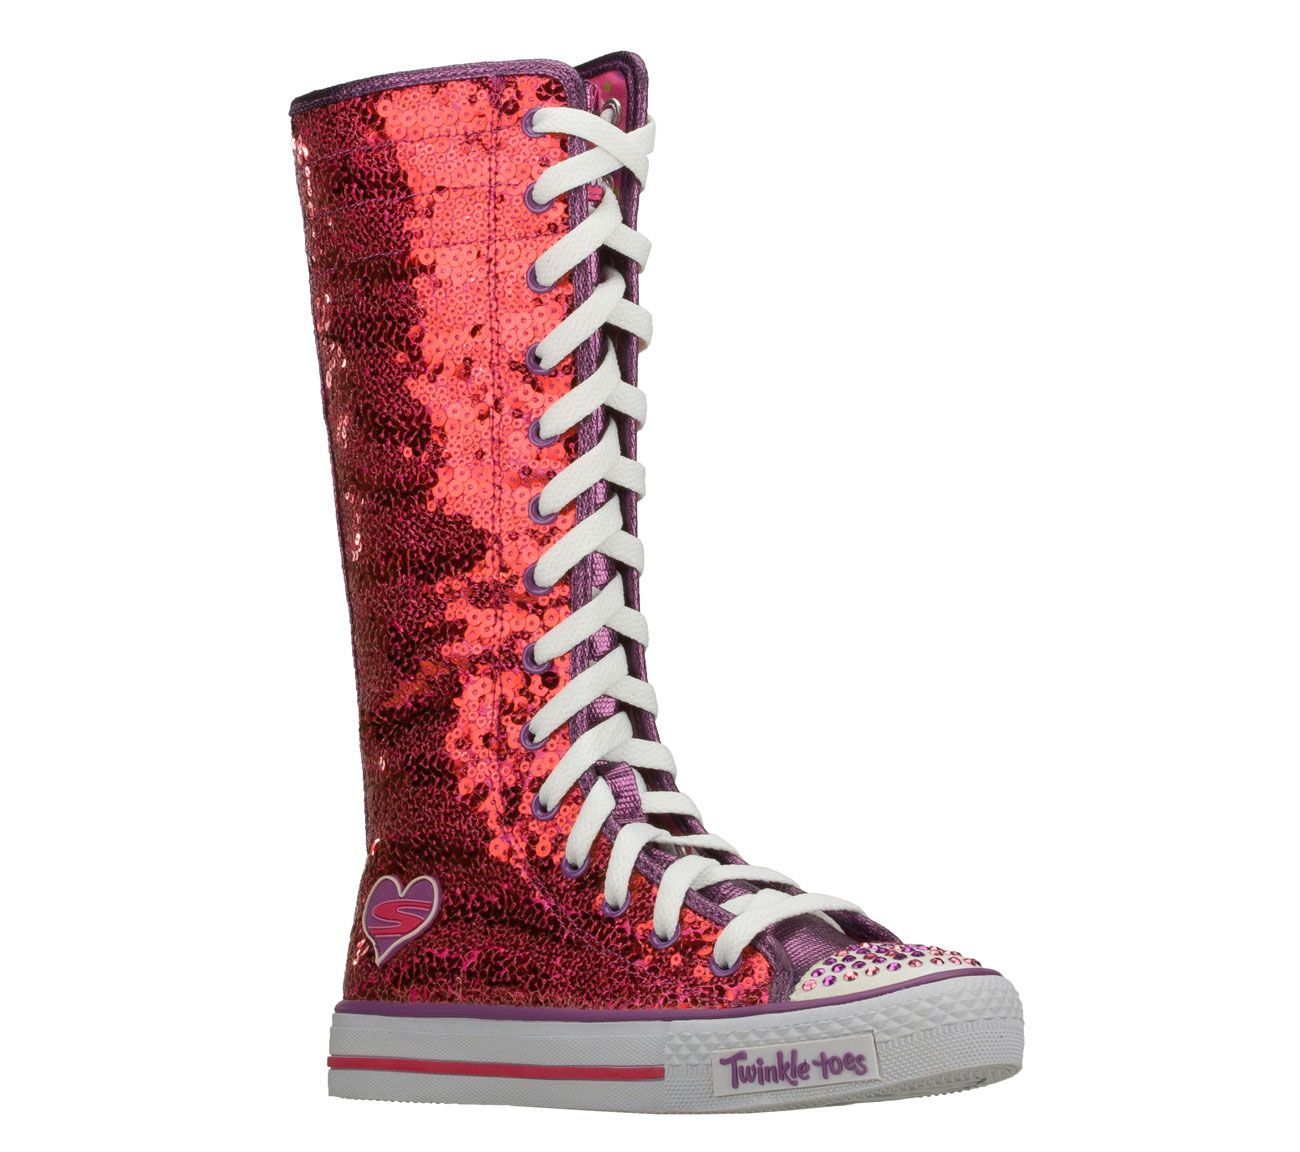 Buy Skechers Girls Twinkle Toes Shuffles Lolly Dolly High Top